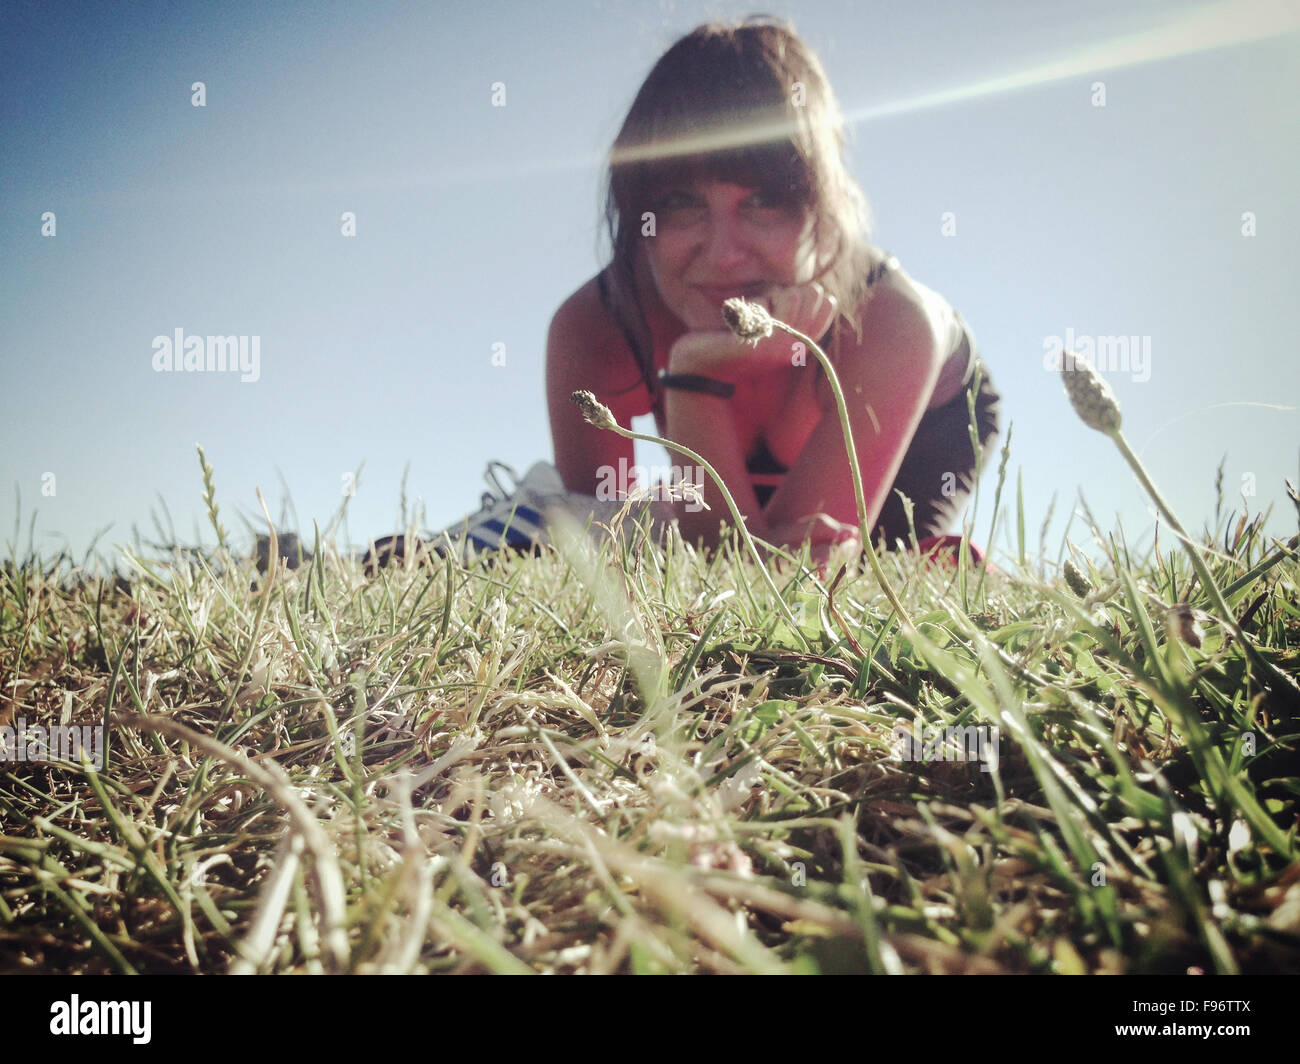 Portrait Of Woman With Hand On Chin While Sitting On Grasses - Stock Image